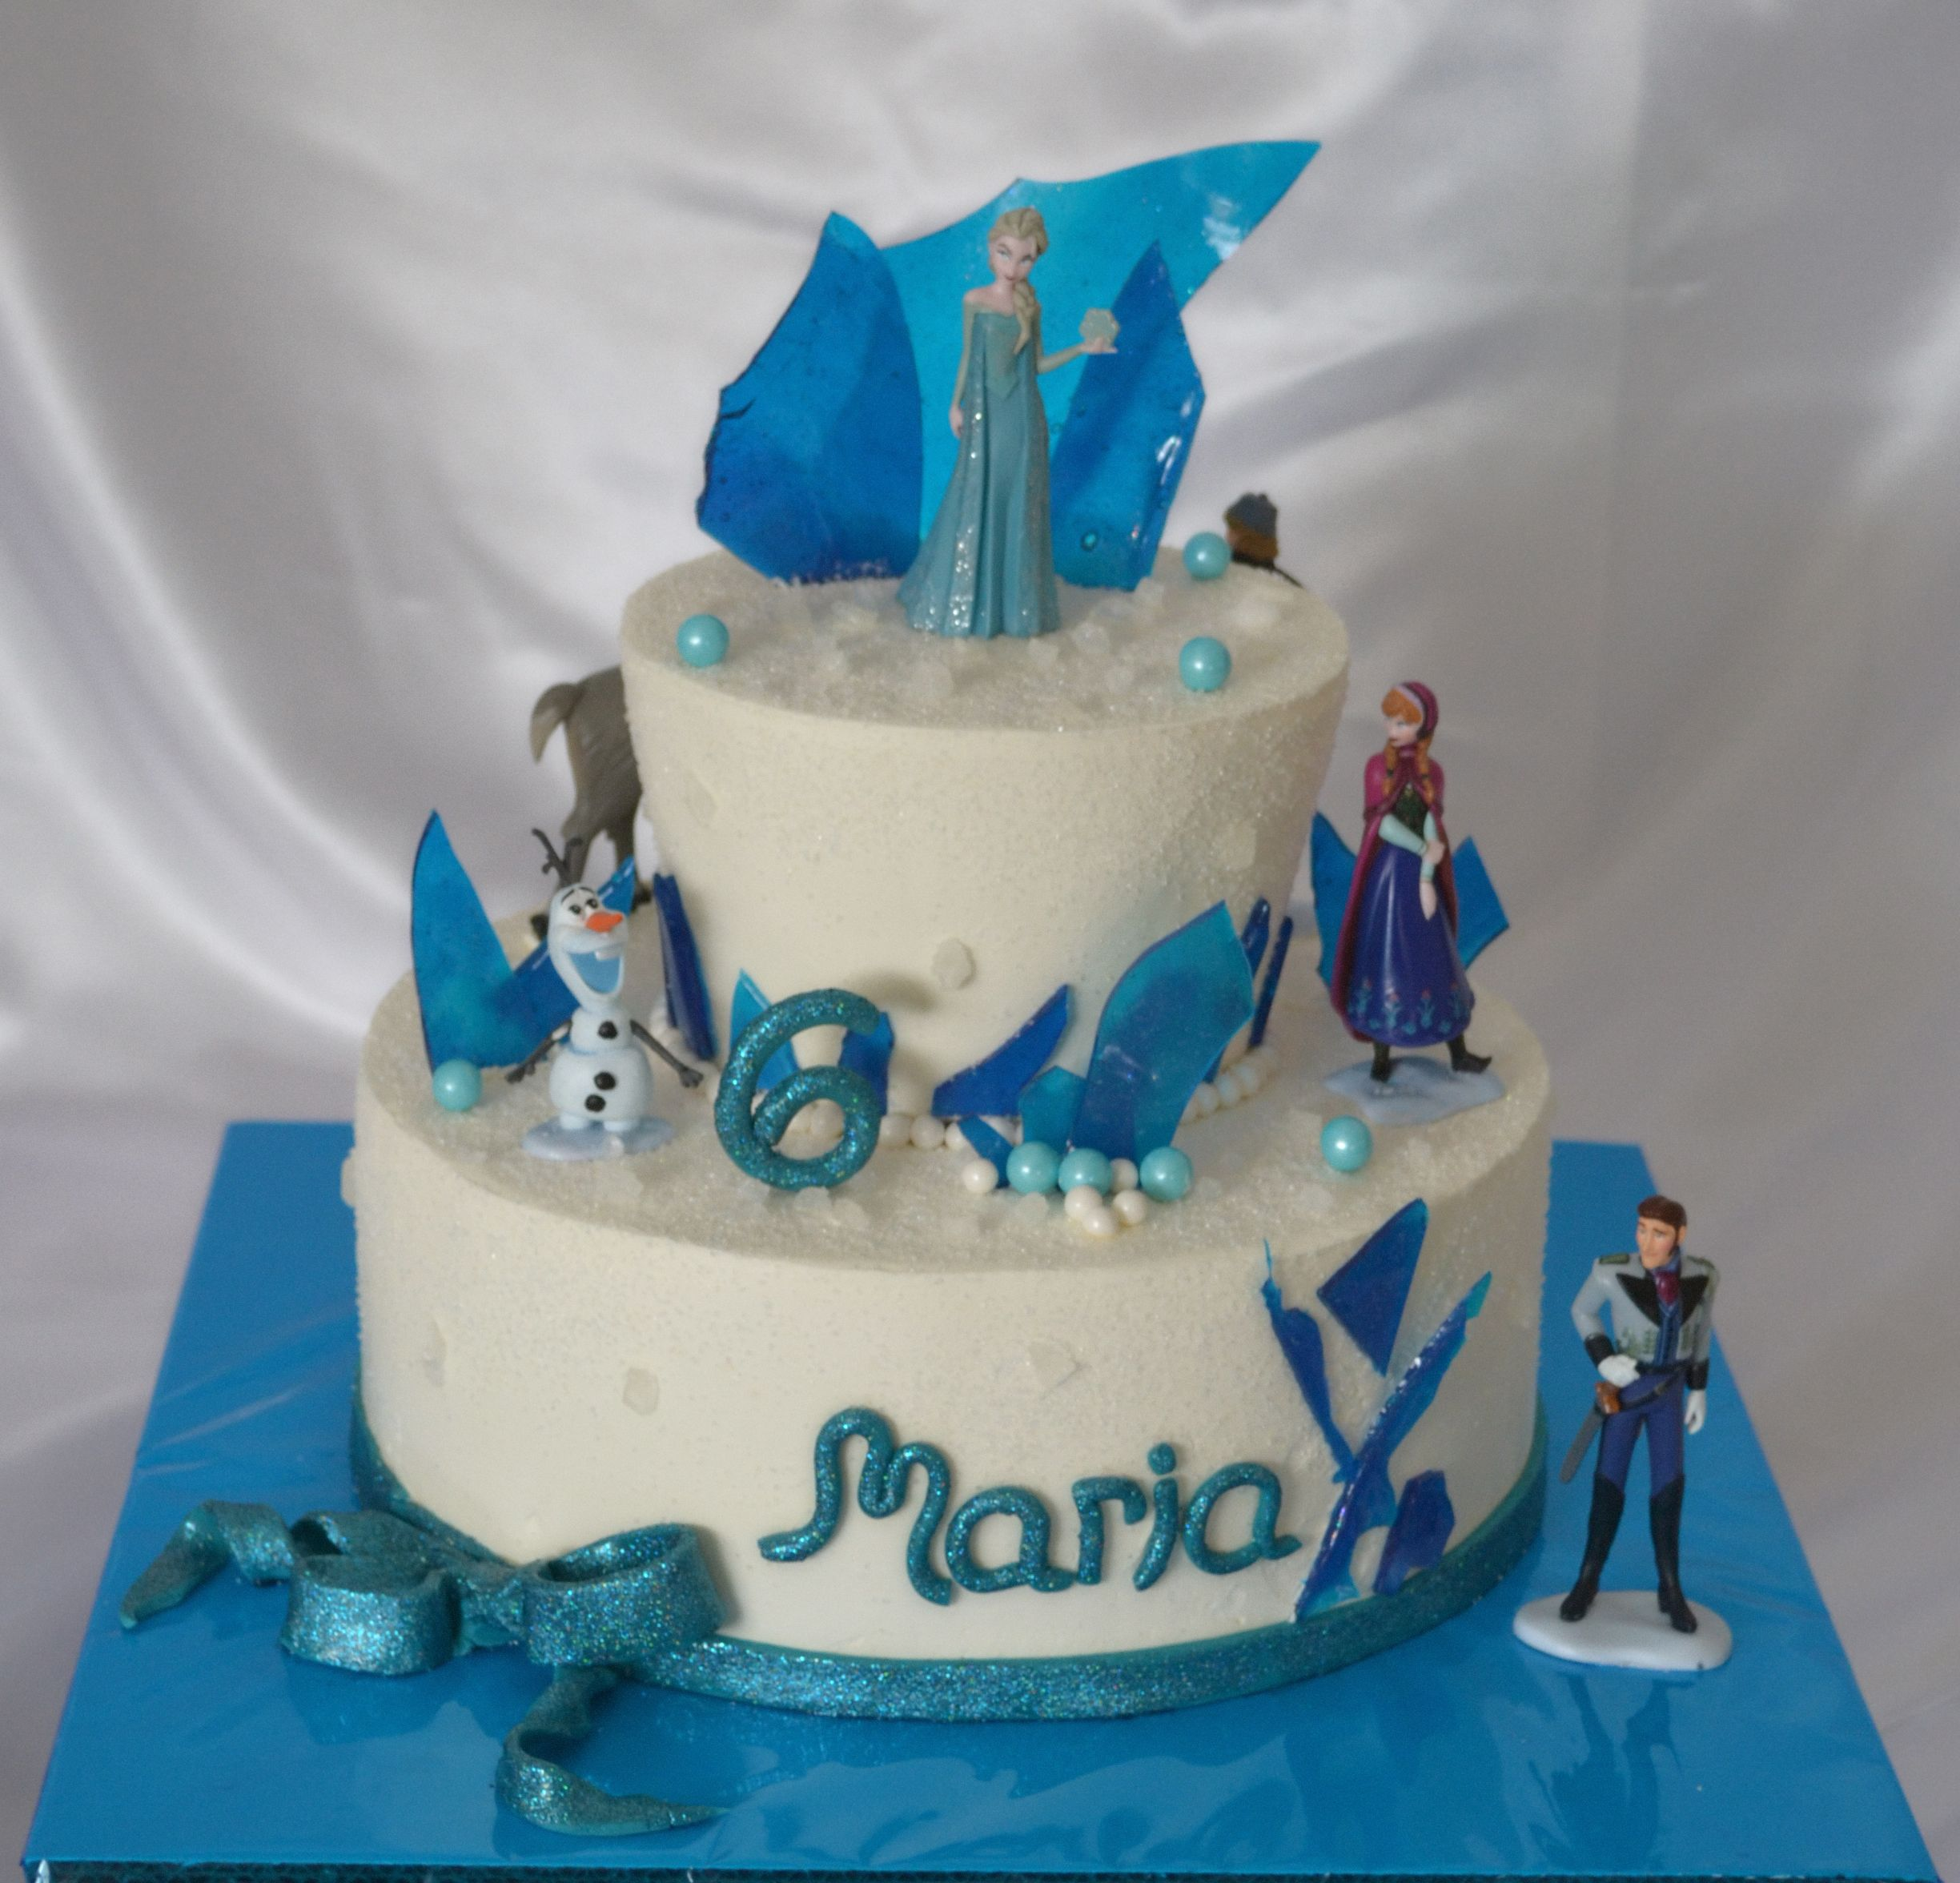 Disneys Frozen Cake Kids Parties Pinterest Disney s Cake and